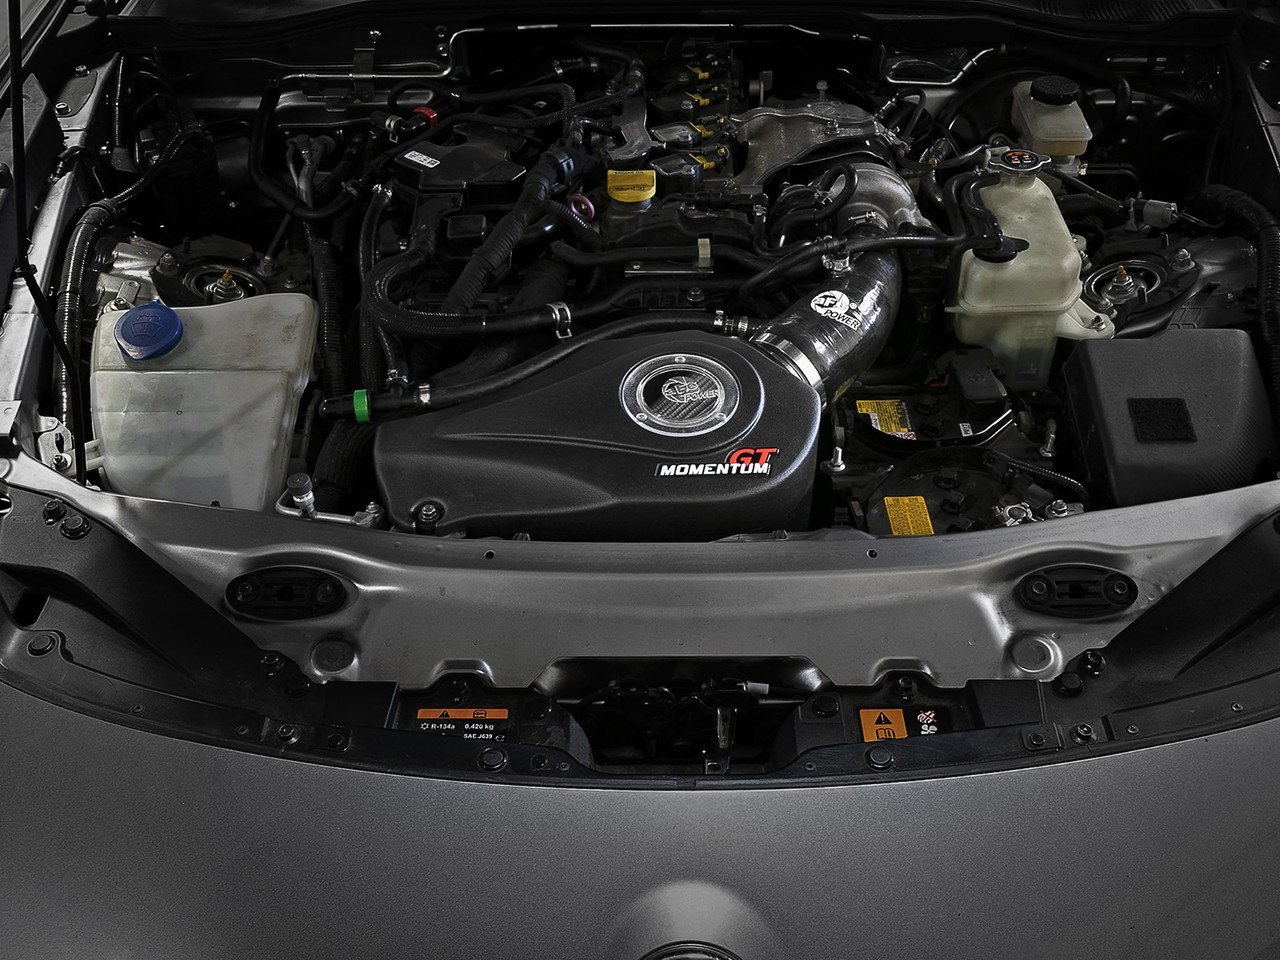 2017-on 124 Spider aFe Momentum GT Cold Air Intake Auto Ricambi